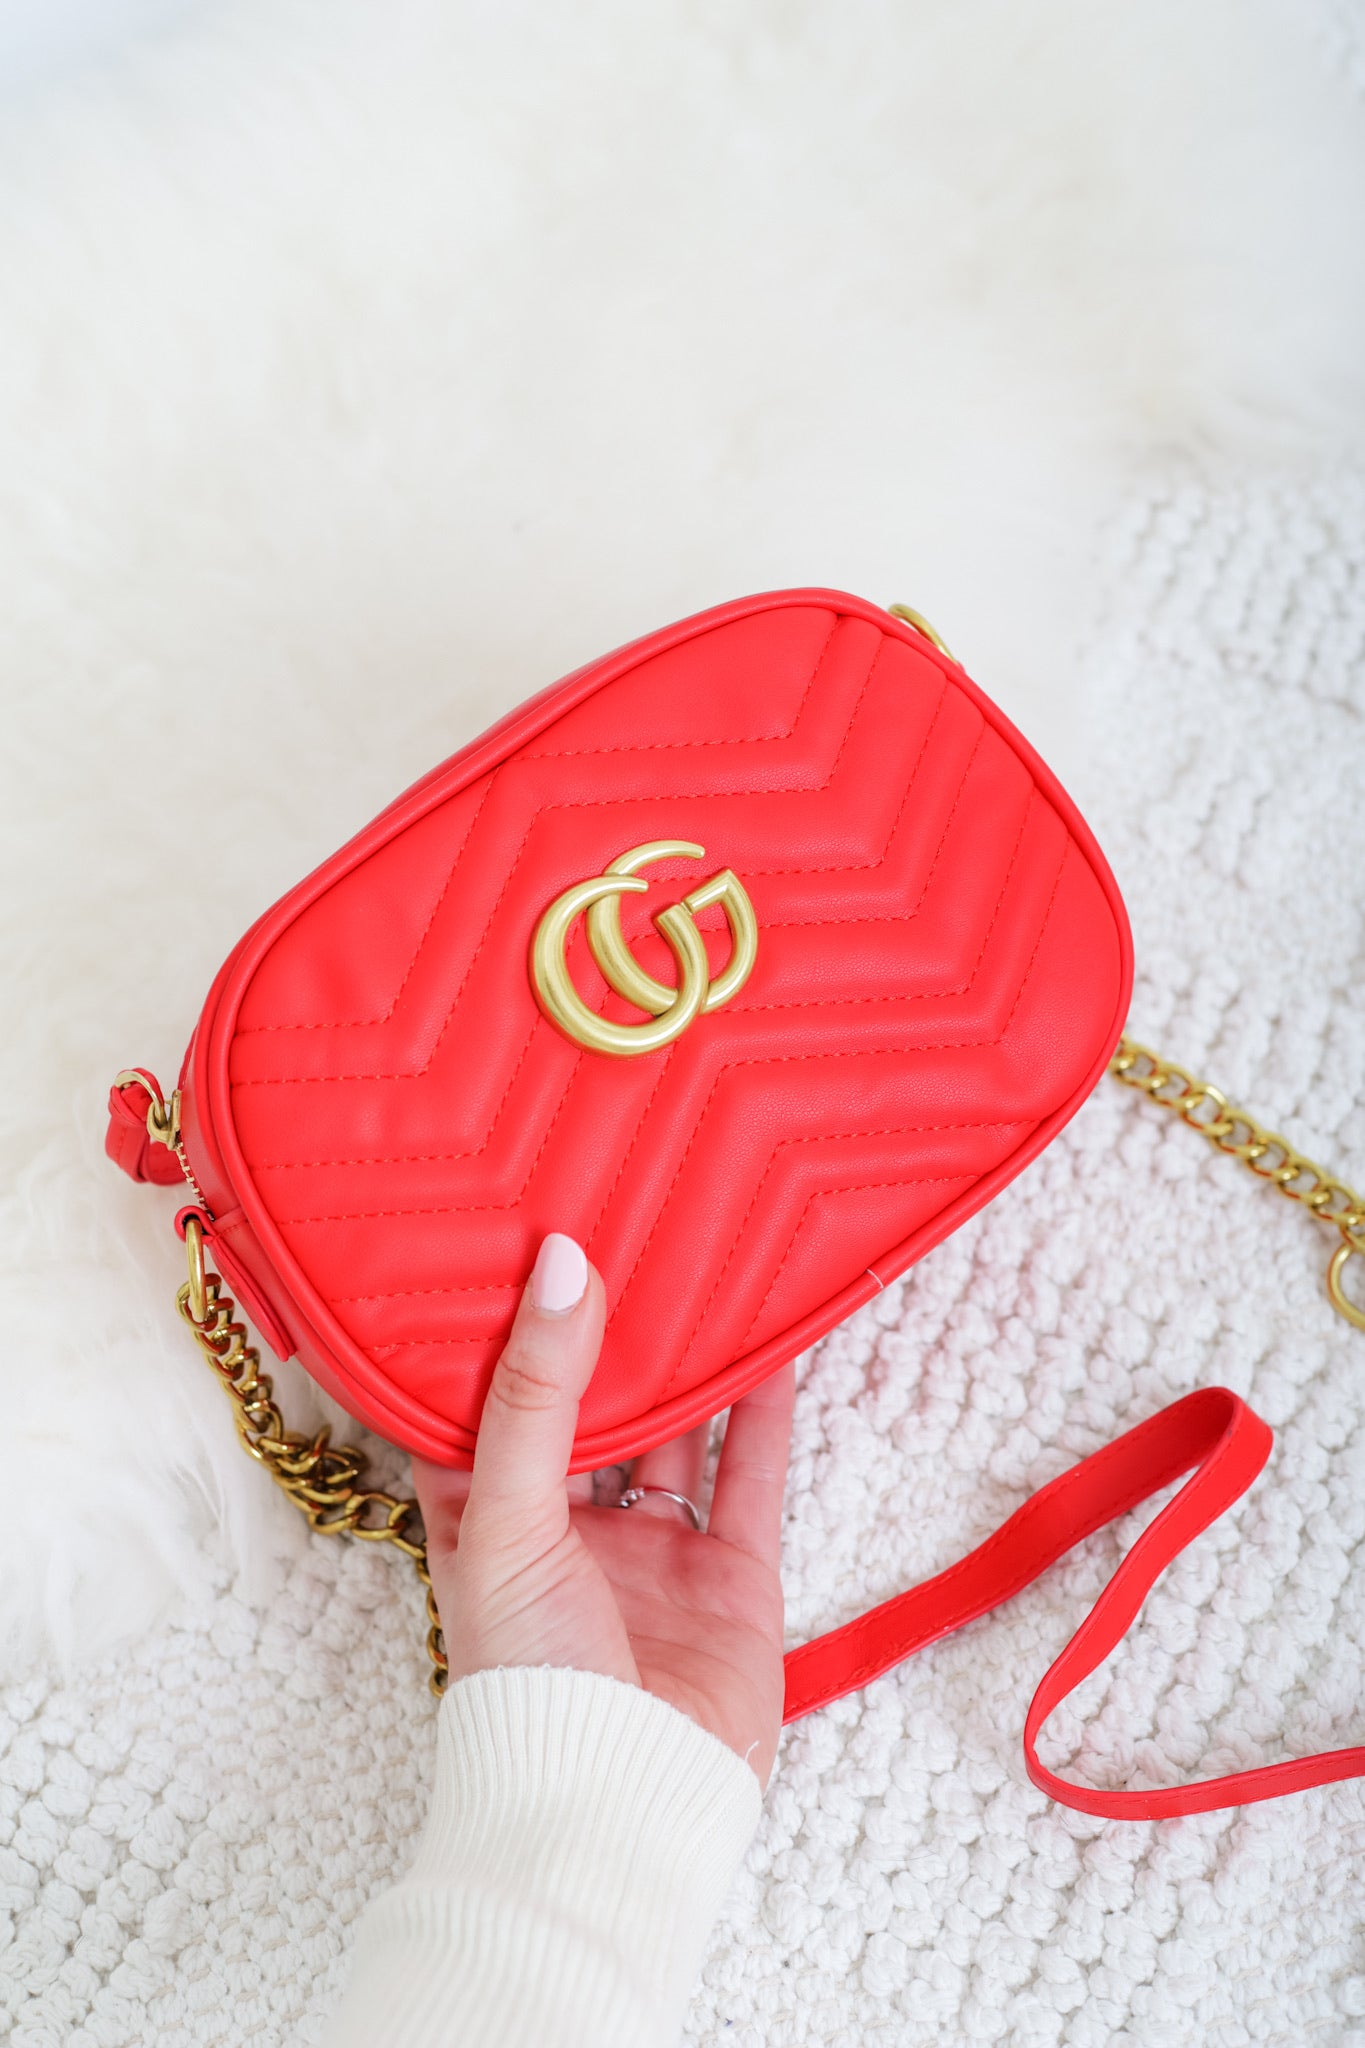 Gee We Love This Handbag - Red